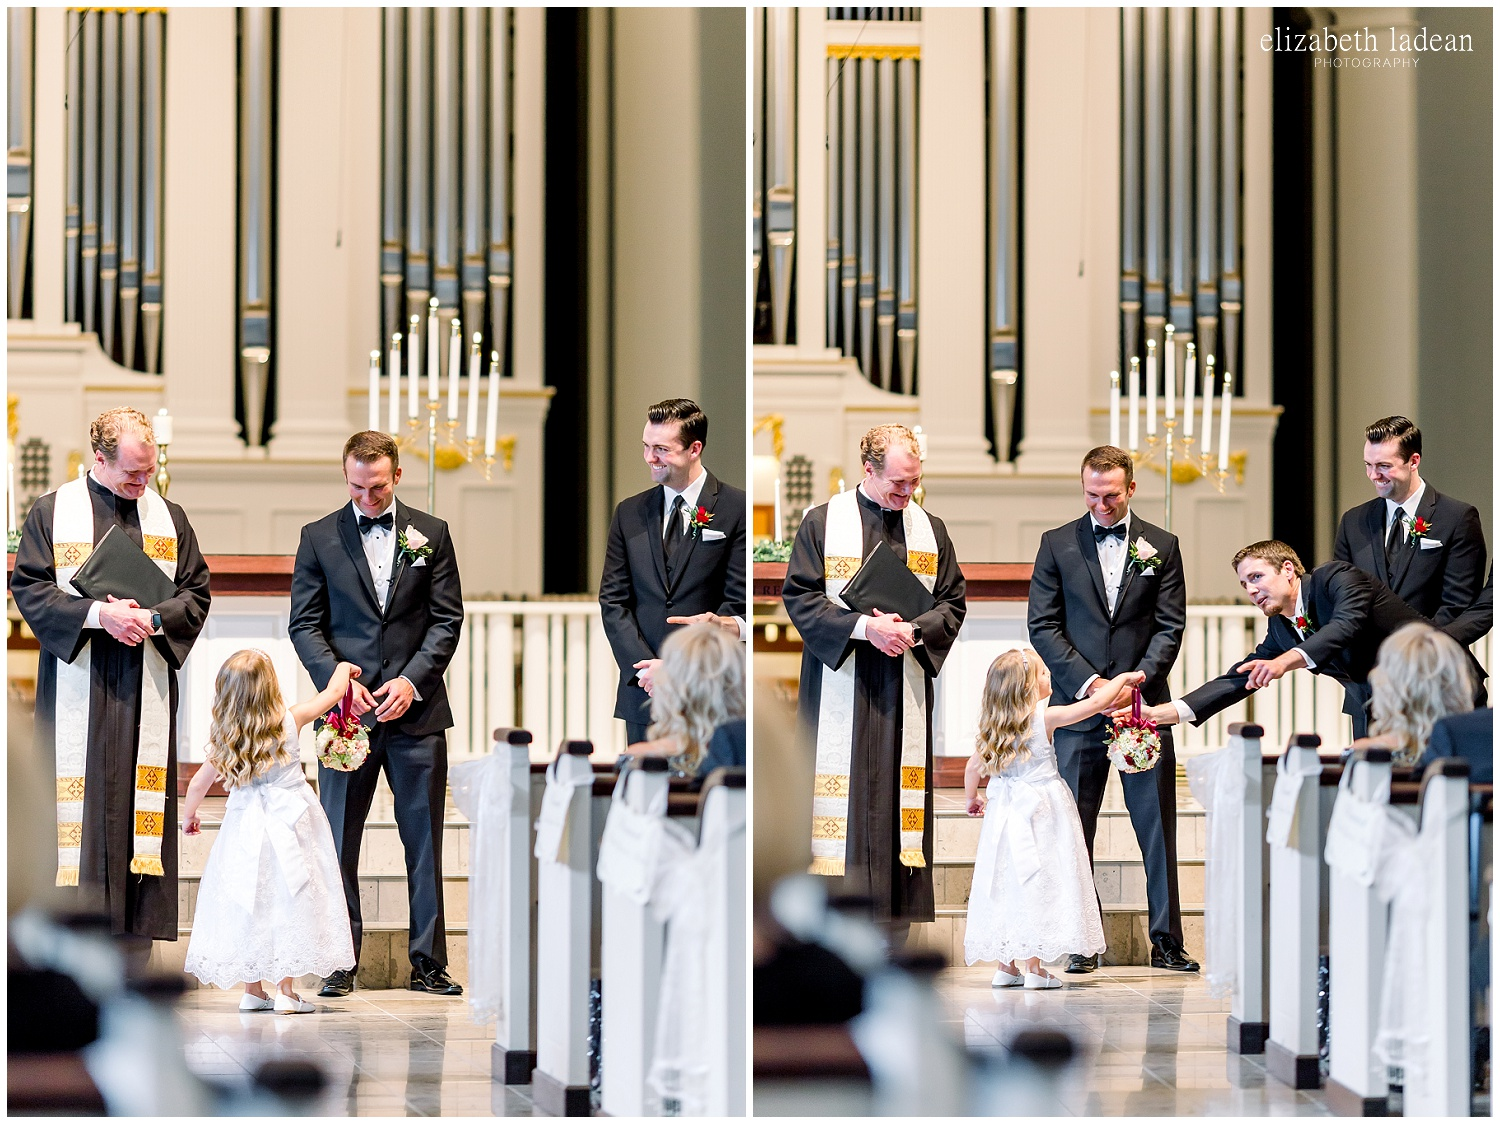 -behind-the-scenes-of-a-wedding-photographer-2018-elizabeth-ladean-photography-photo_3576.jpg